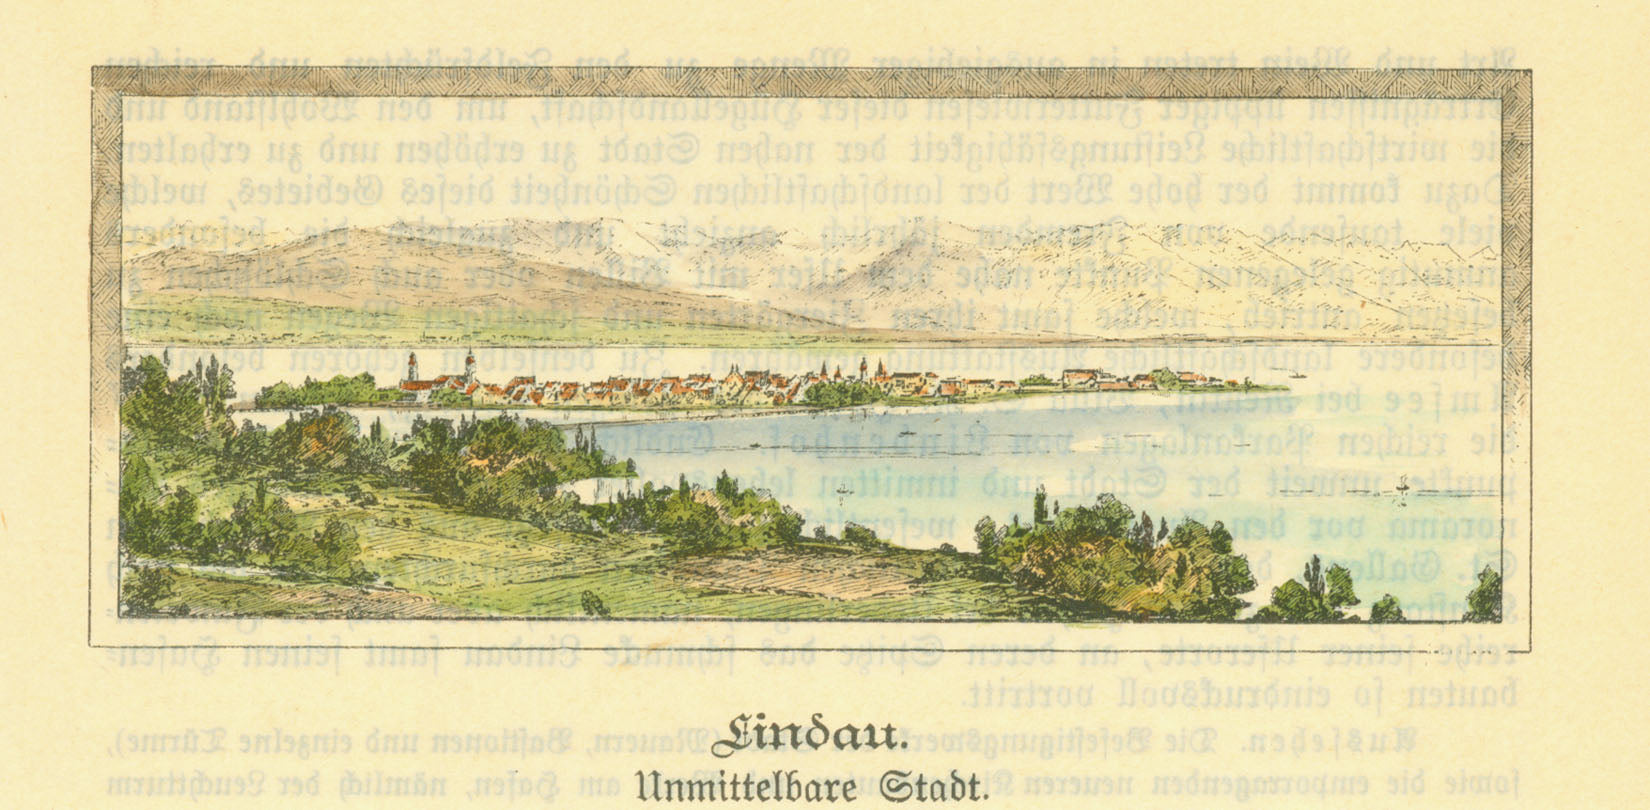 """Lindau""  Hand-colored wood engraving, 1895. Print from reverse side is lightly visible."